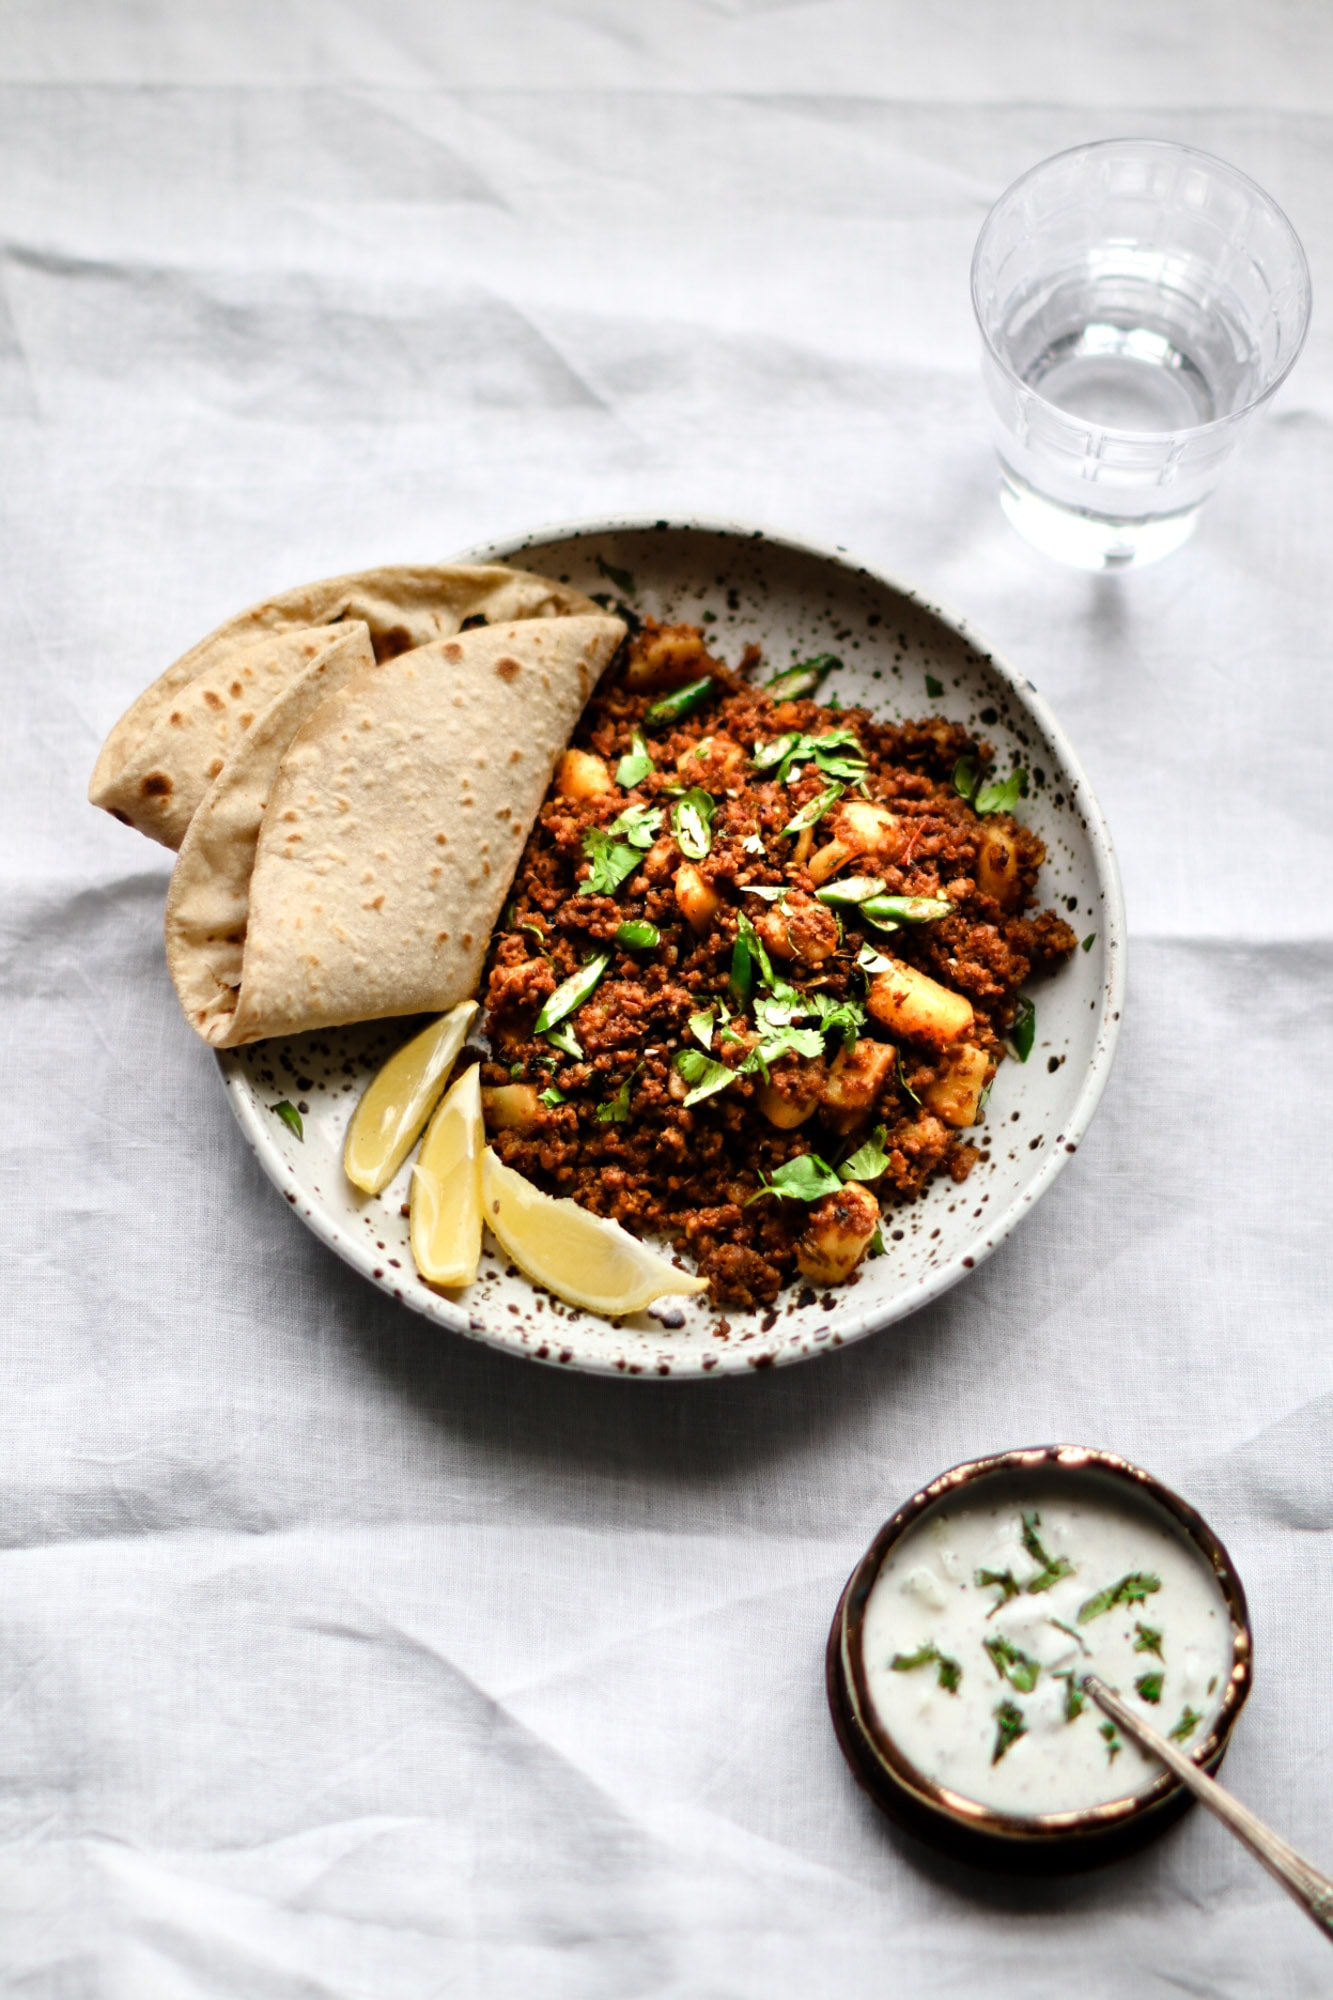 Aloo Keema with roti and lemon wedges on a speckled plate.